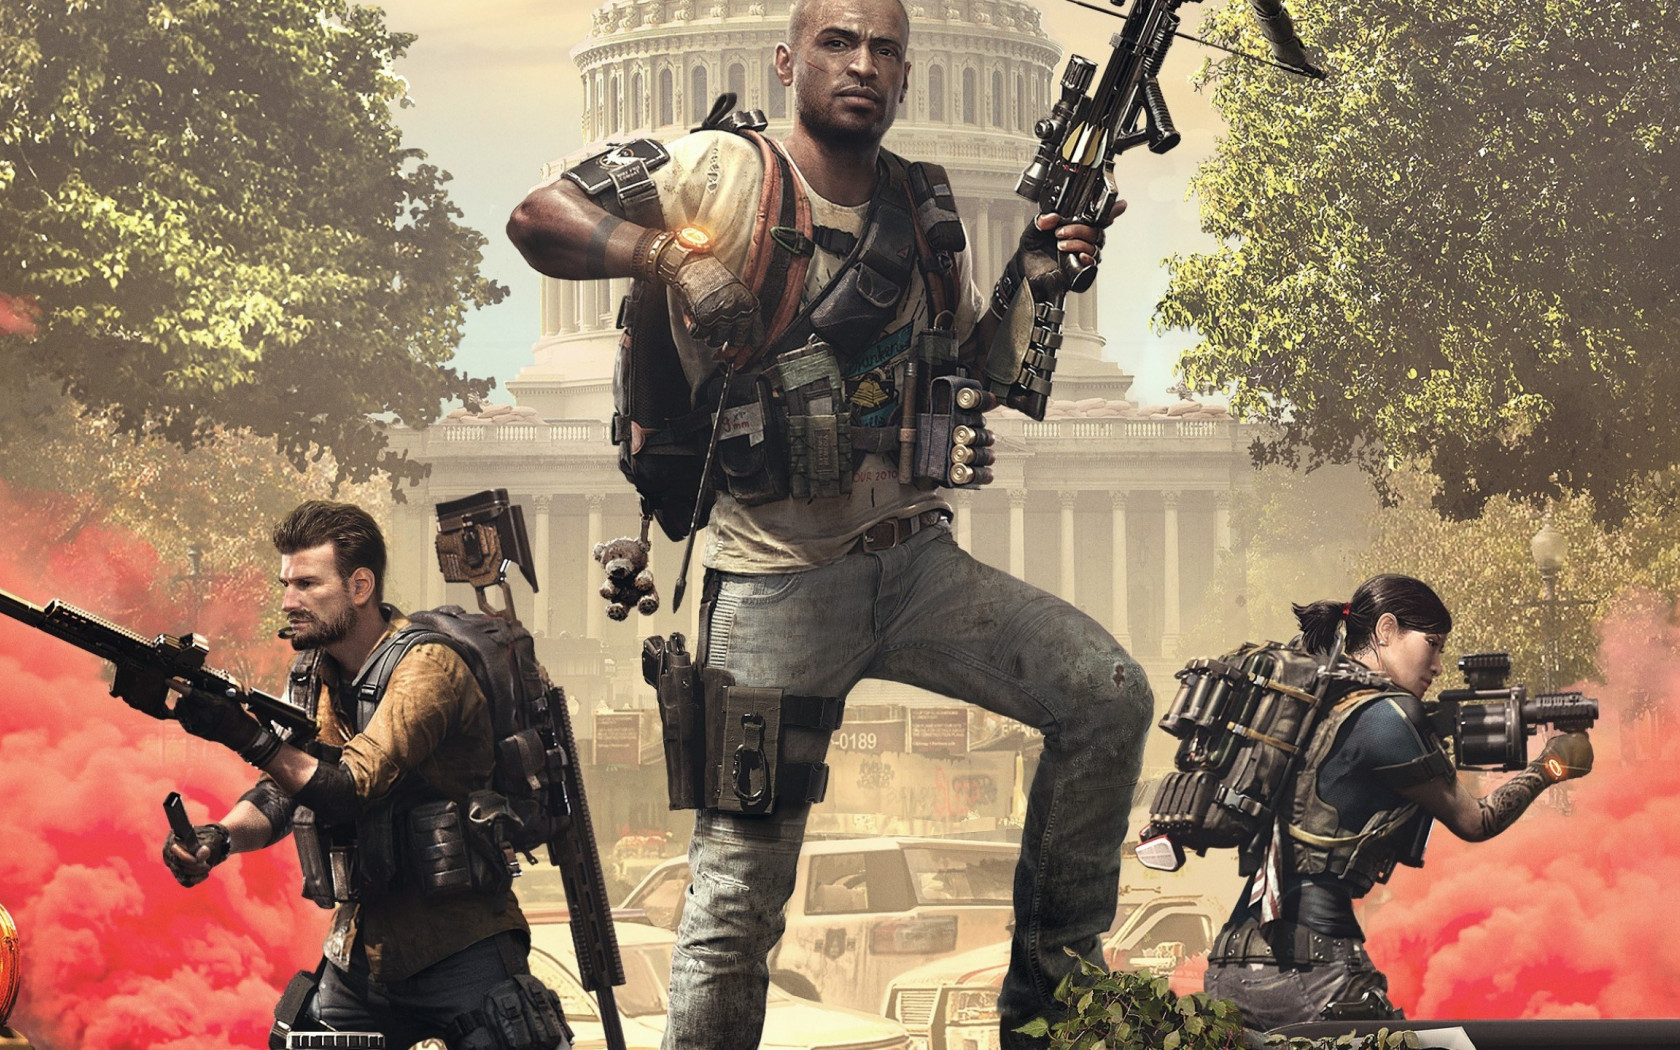 Tom Clancy's The Division 2 Episodes 2019 wallpaper 1680x1050